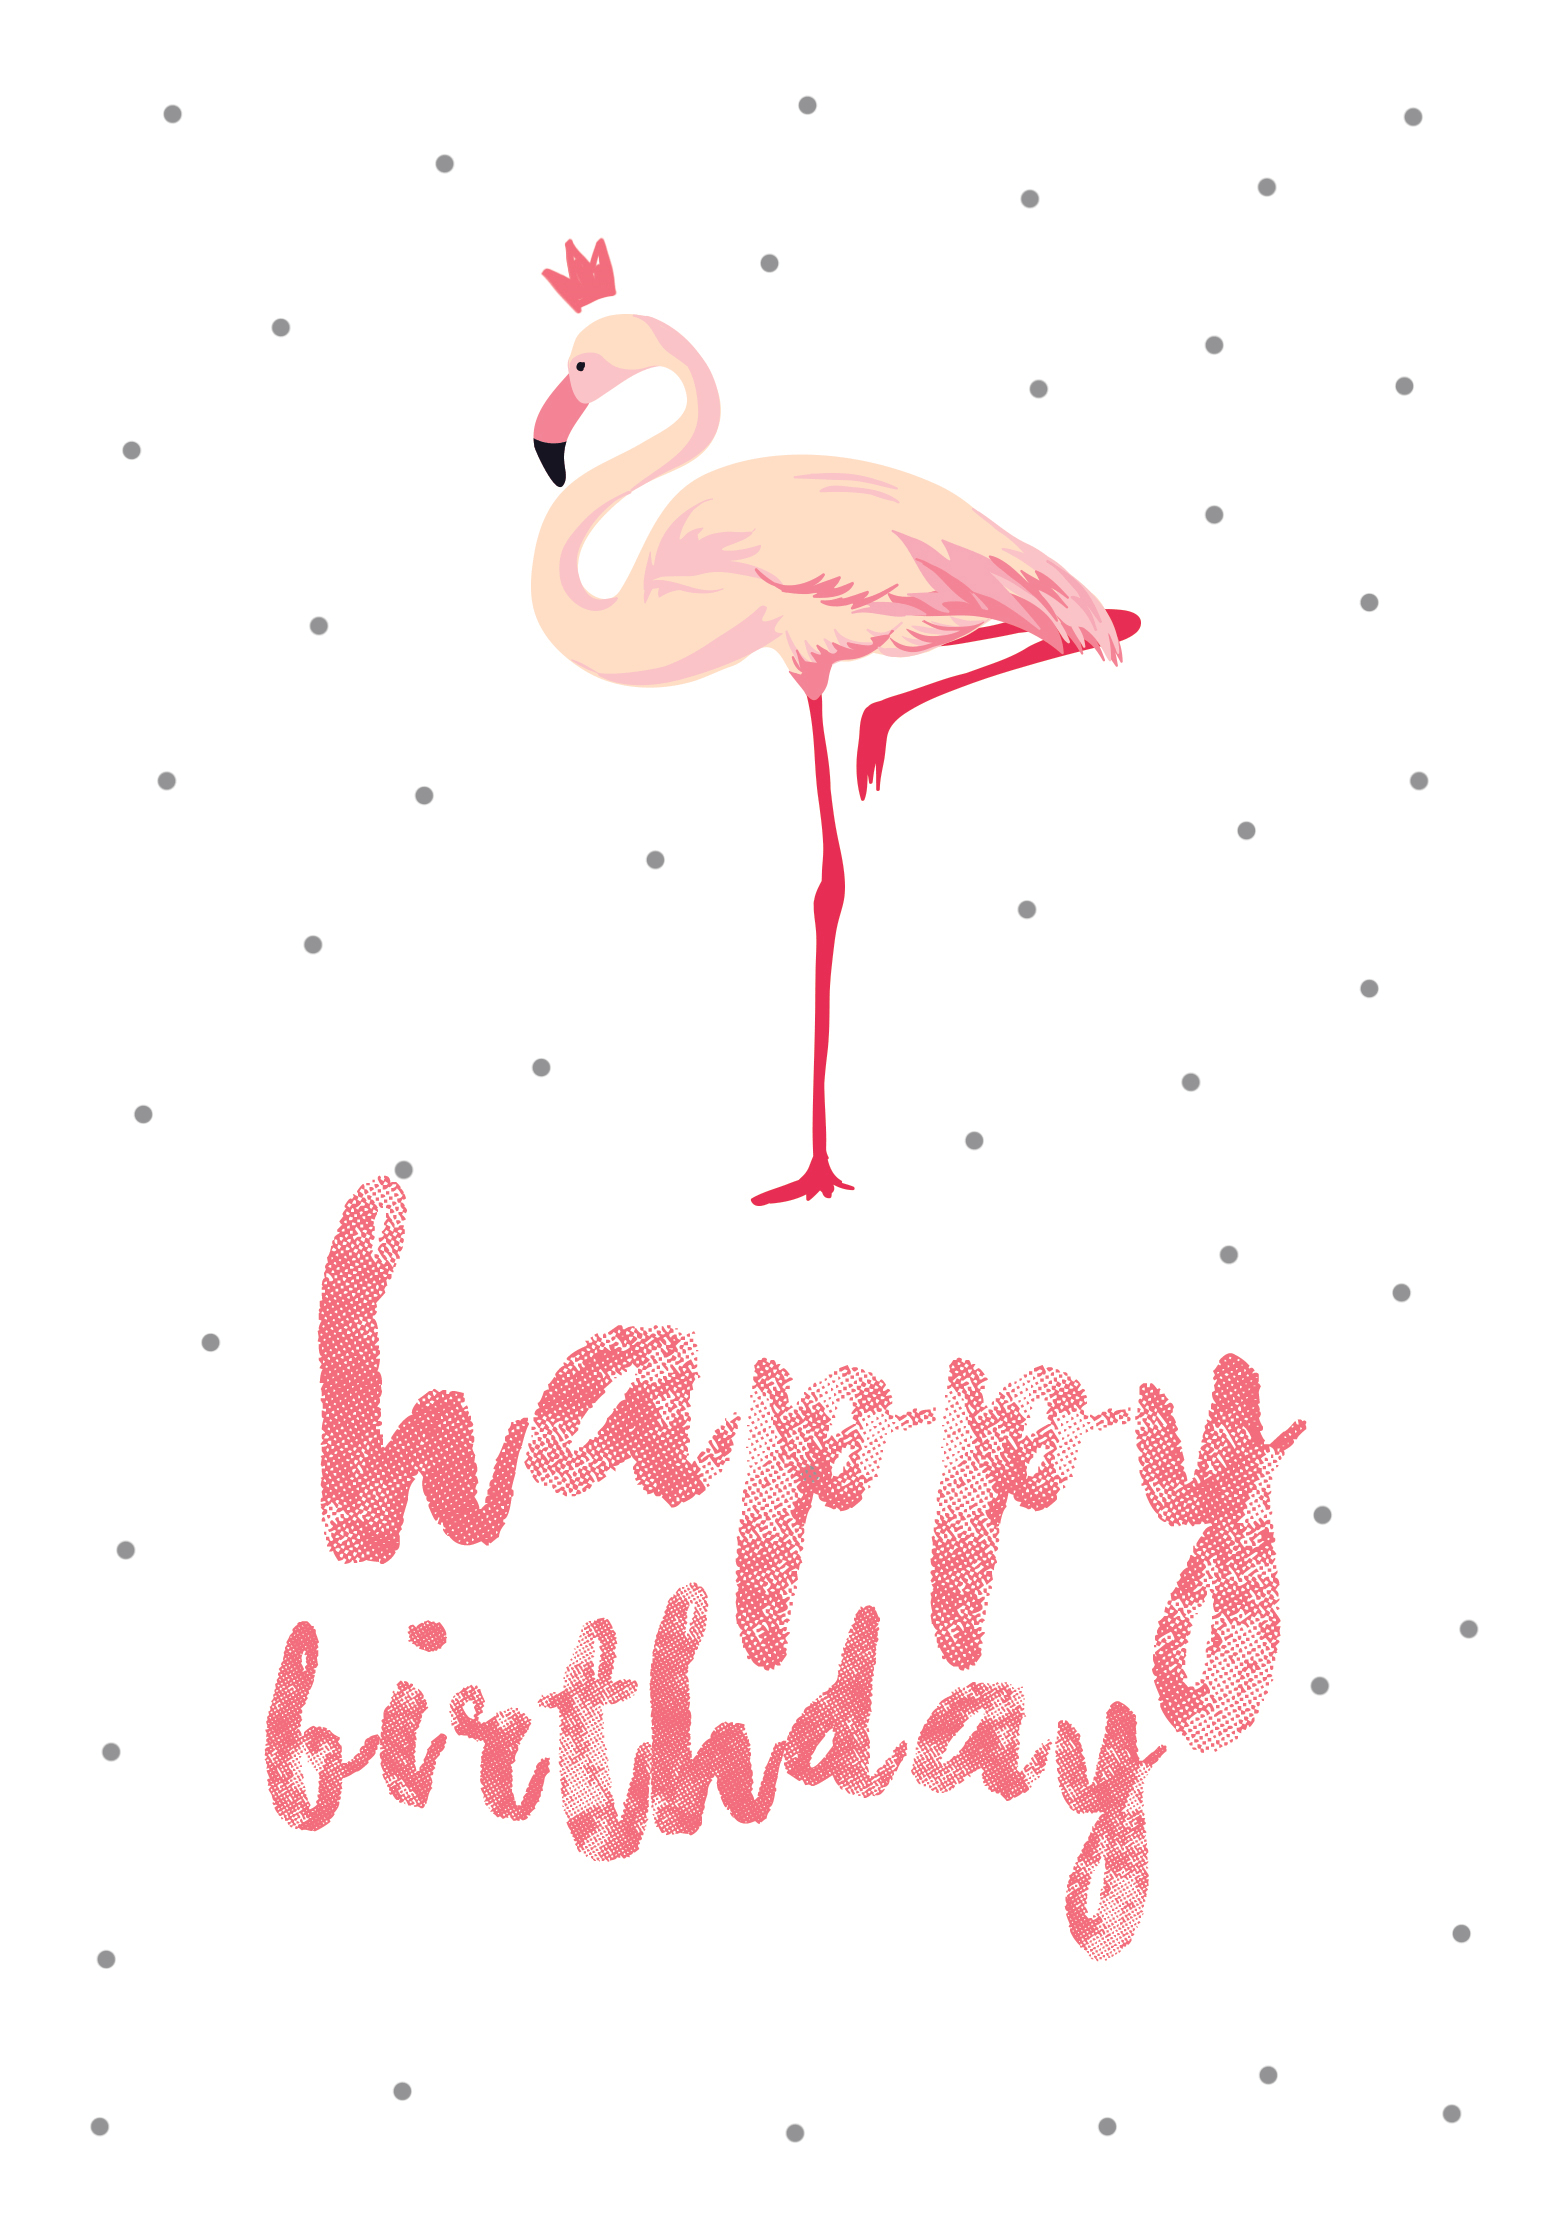 Flamingo Birthday - Free Printable Birthday Card | Greetings Island - Free Printable Bday Cards